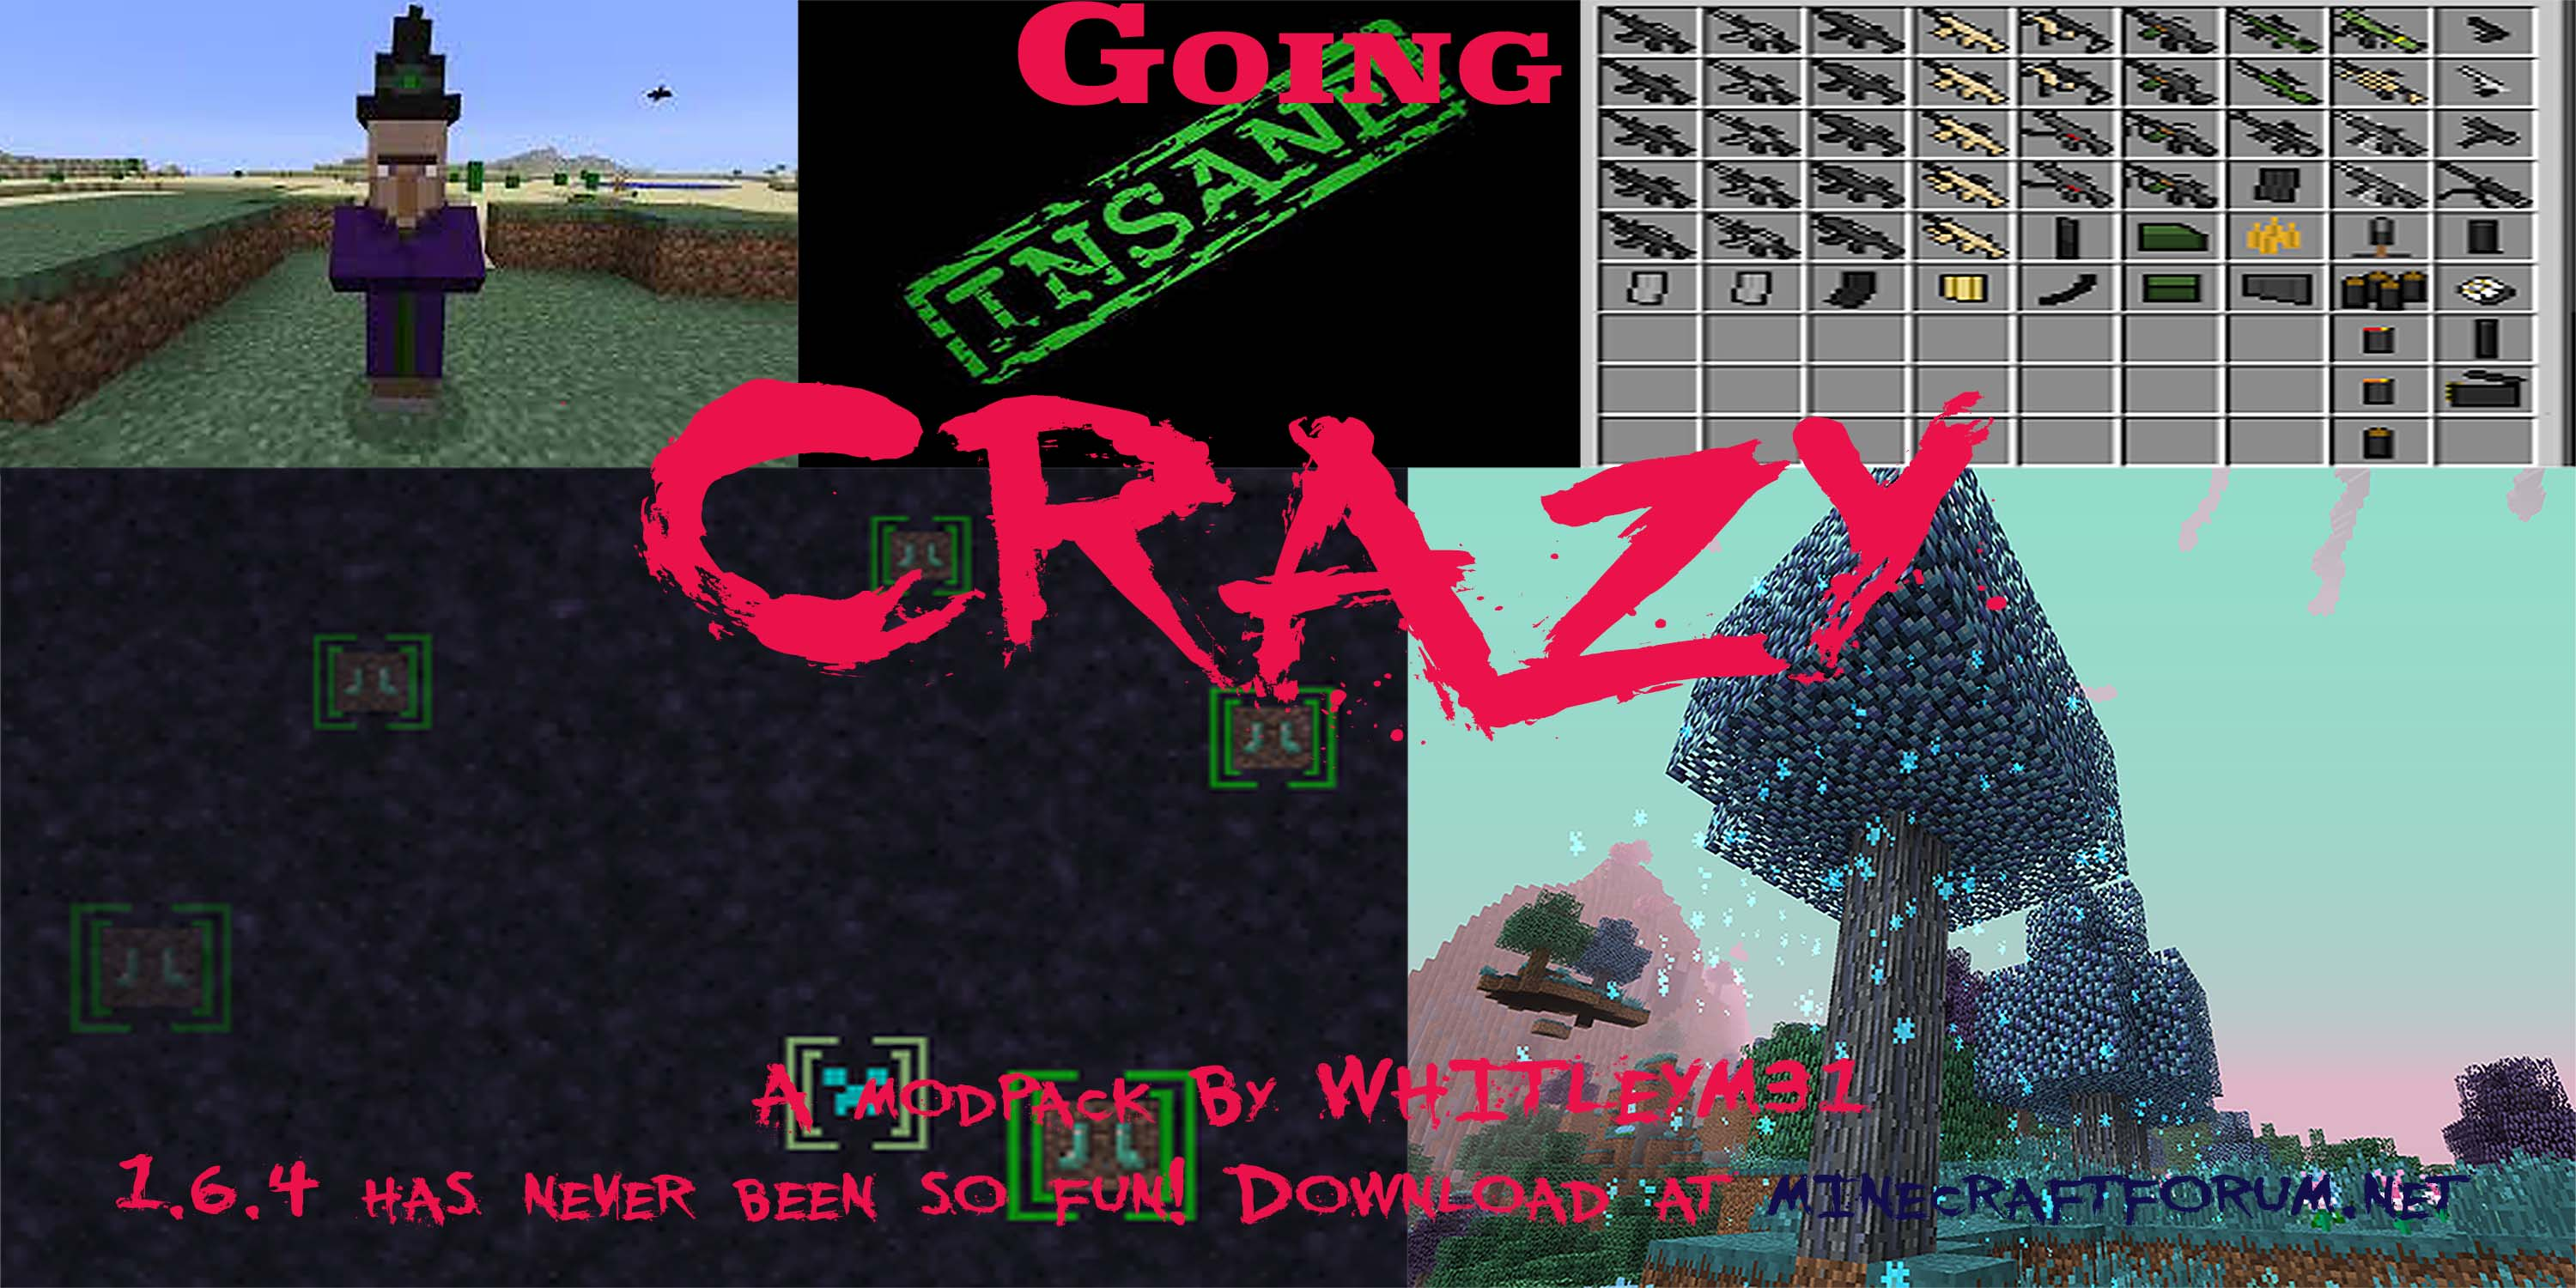 Going crazy modpack 1. 6. 4 mod packs minecraft mods mapping.